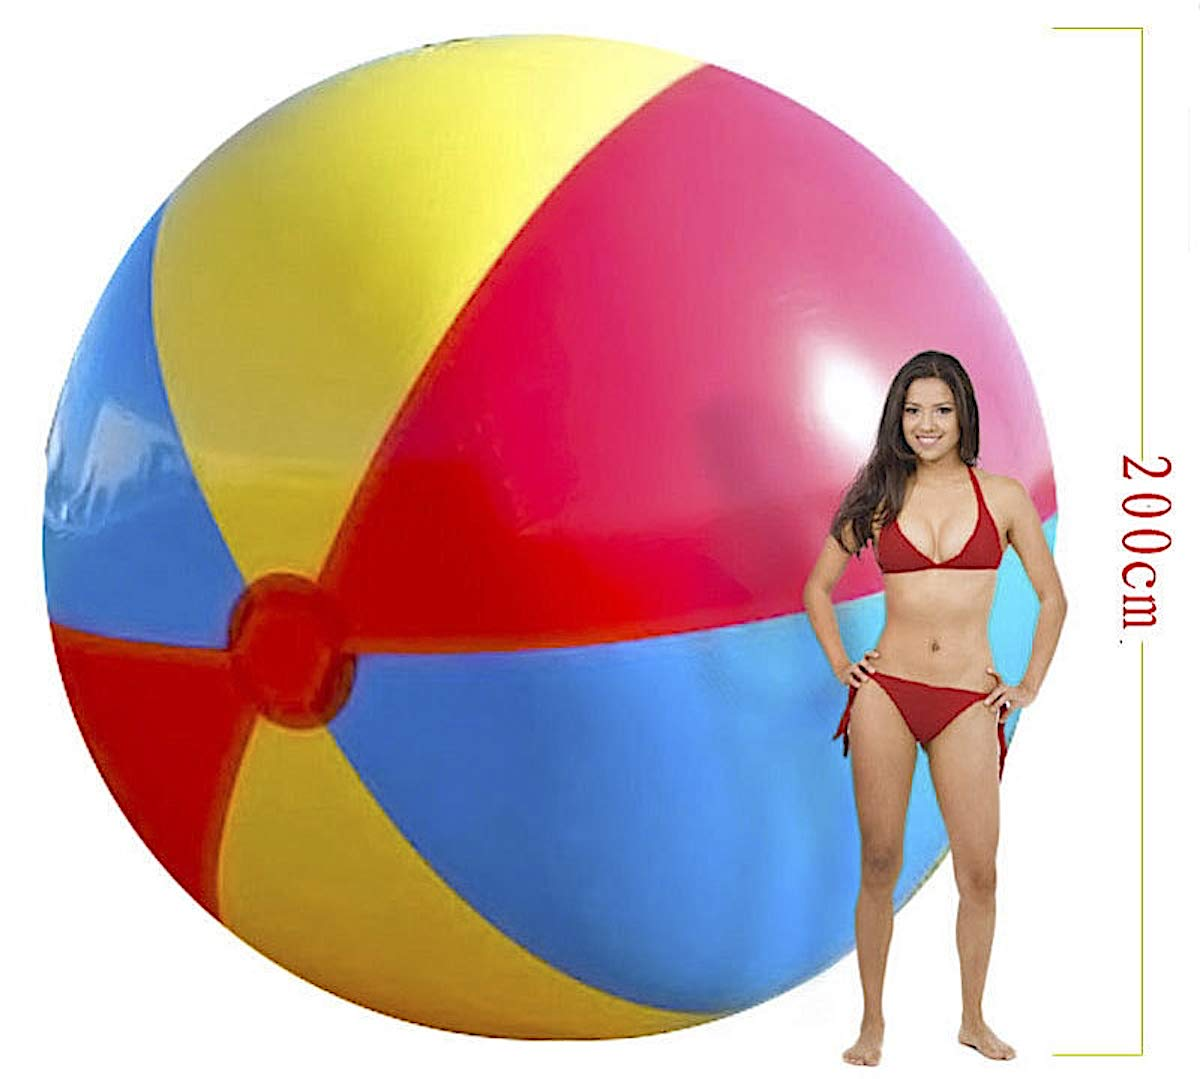 Super Big Giant Inflatable Beach Ball Beach Play Sport Summer Toy Game Party Ball Outdoor Fun Balloon for Kids and Adults, 200cm in Size, 79 inch by Bluebd